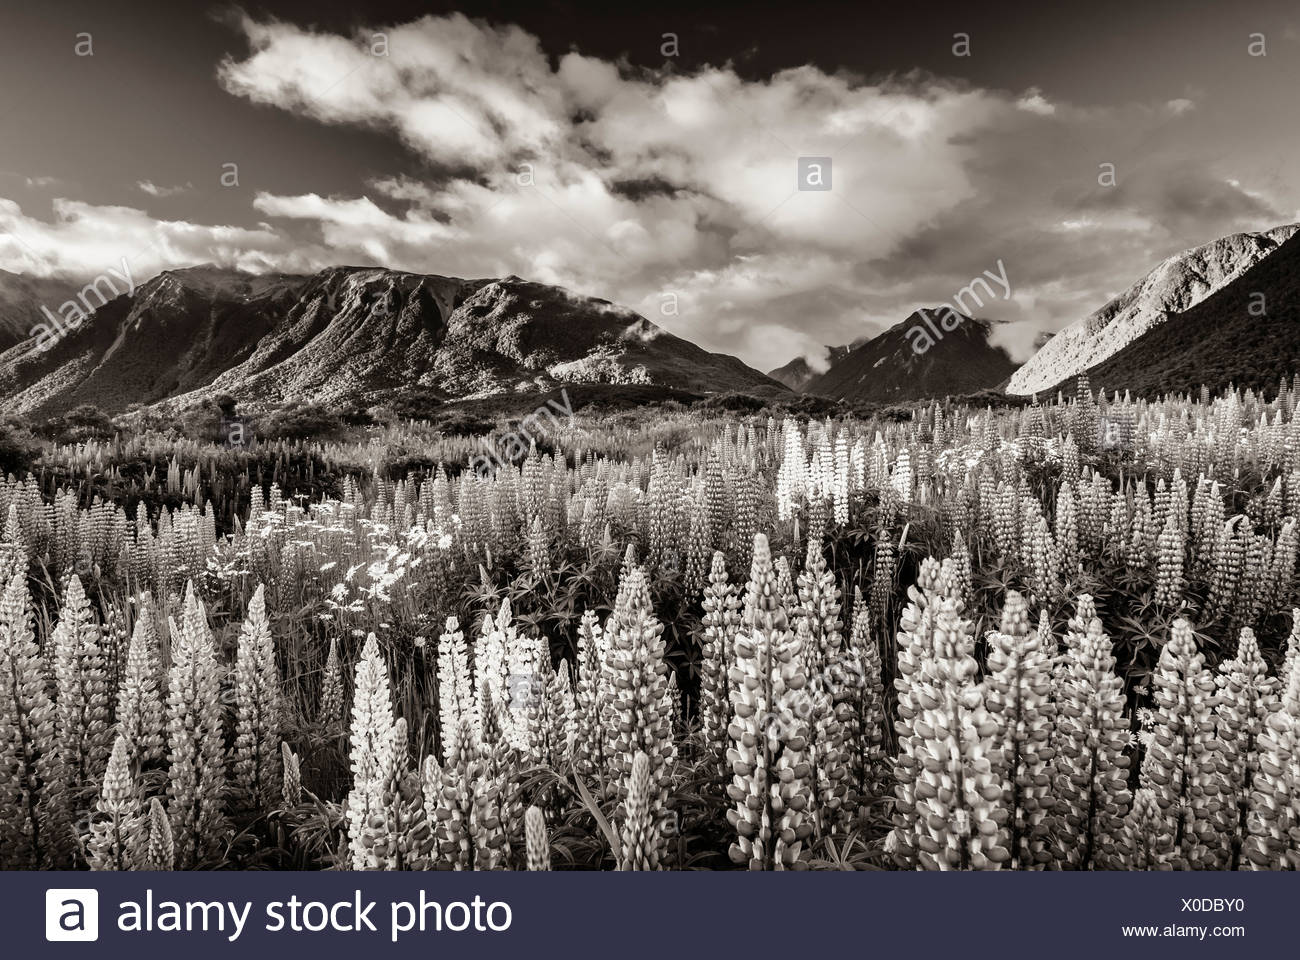 Lupins (Lupinus) at Arthur's Pass, black and white with a sepia tint, South Island, New Zealand, Oceania - Stock Image